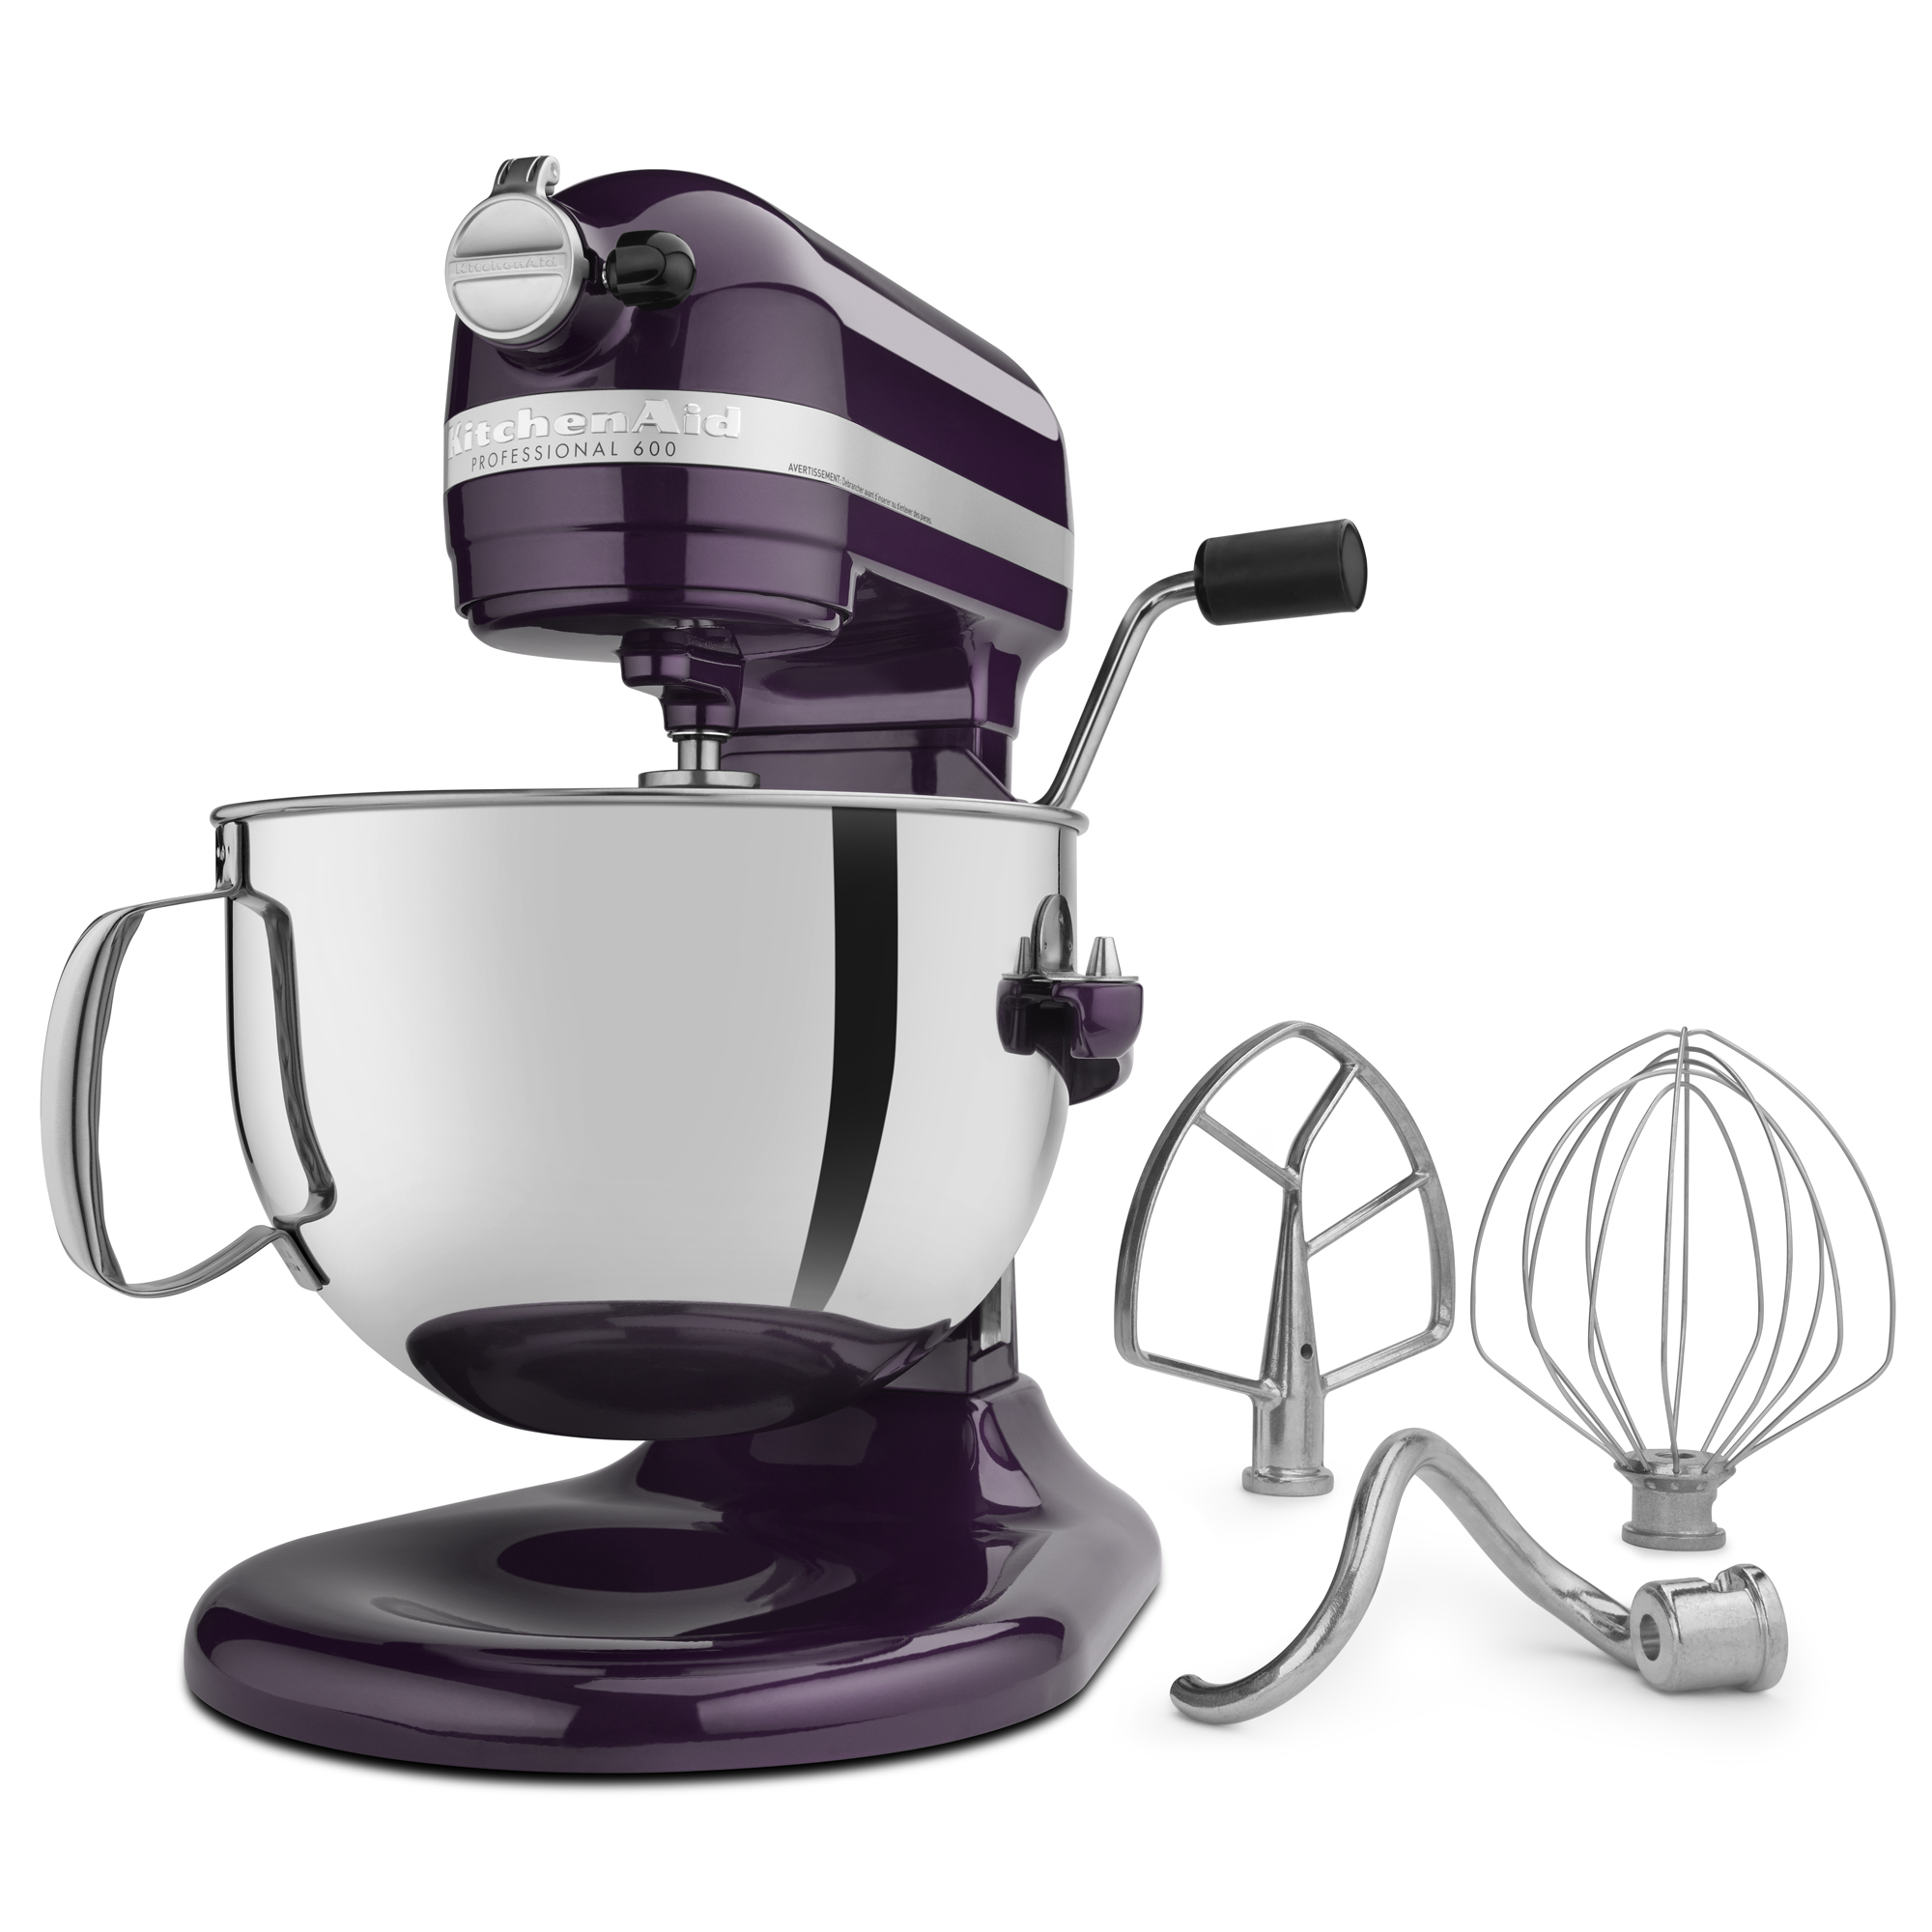 KitchenAid-Refurbished-Pro-600-Series-6-Quart-Bowl-Lift-Stand-Mixer-RKP26M1X thumbnail 32